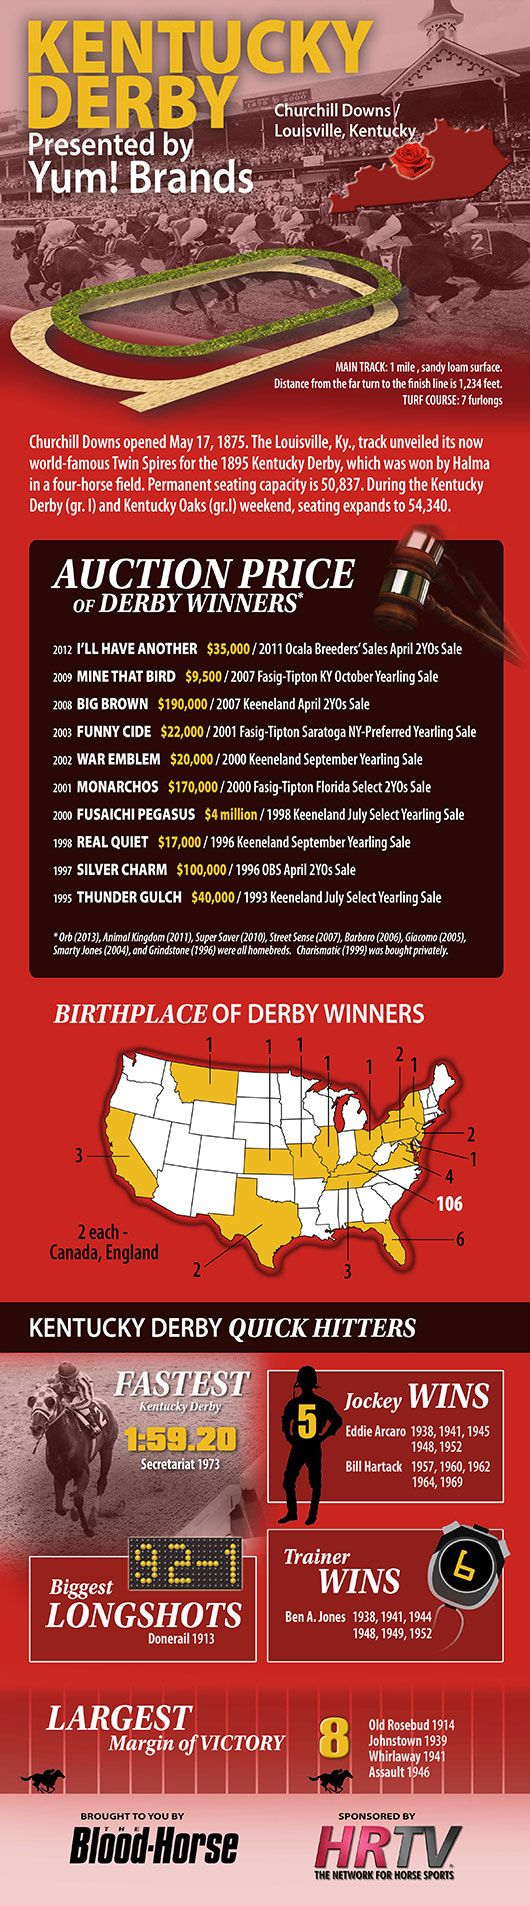 The $2,000,000 Kentucky Derby Presented by Yum! Brands (gr. I) has a rich…